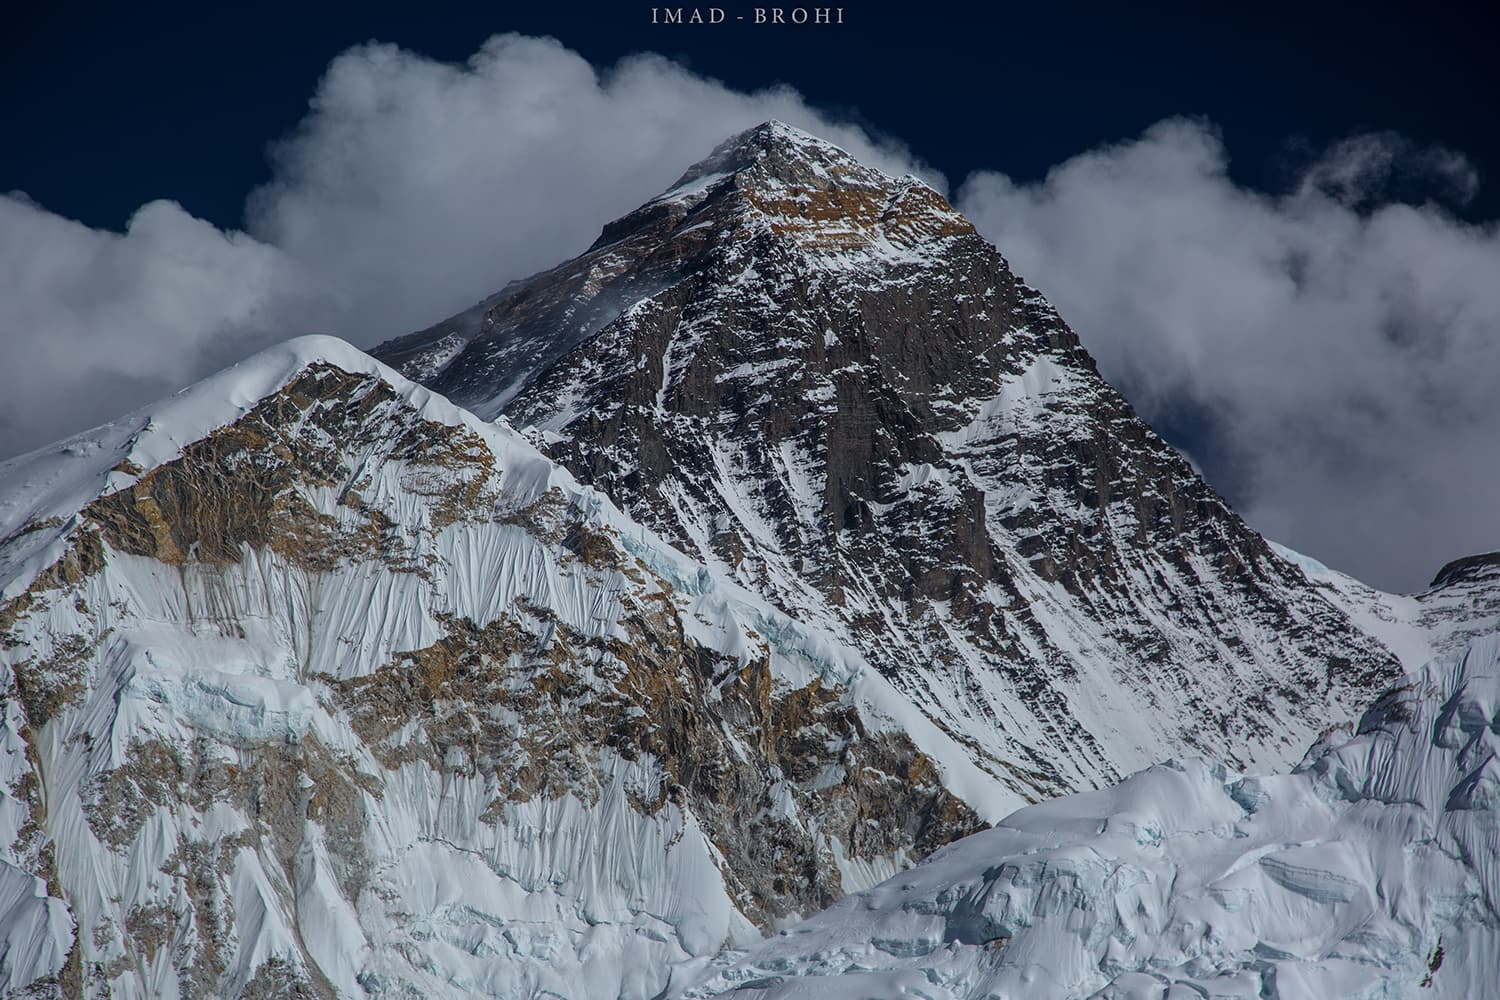 Day 10: Everest summit (8,848m) from Kala Pathar.